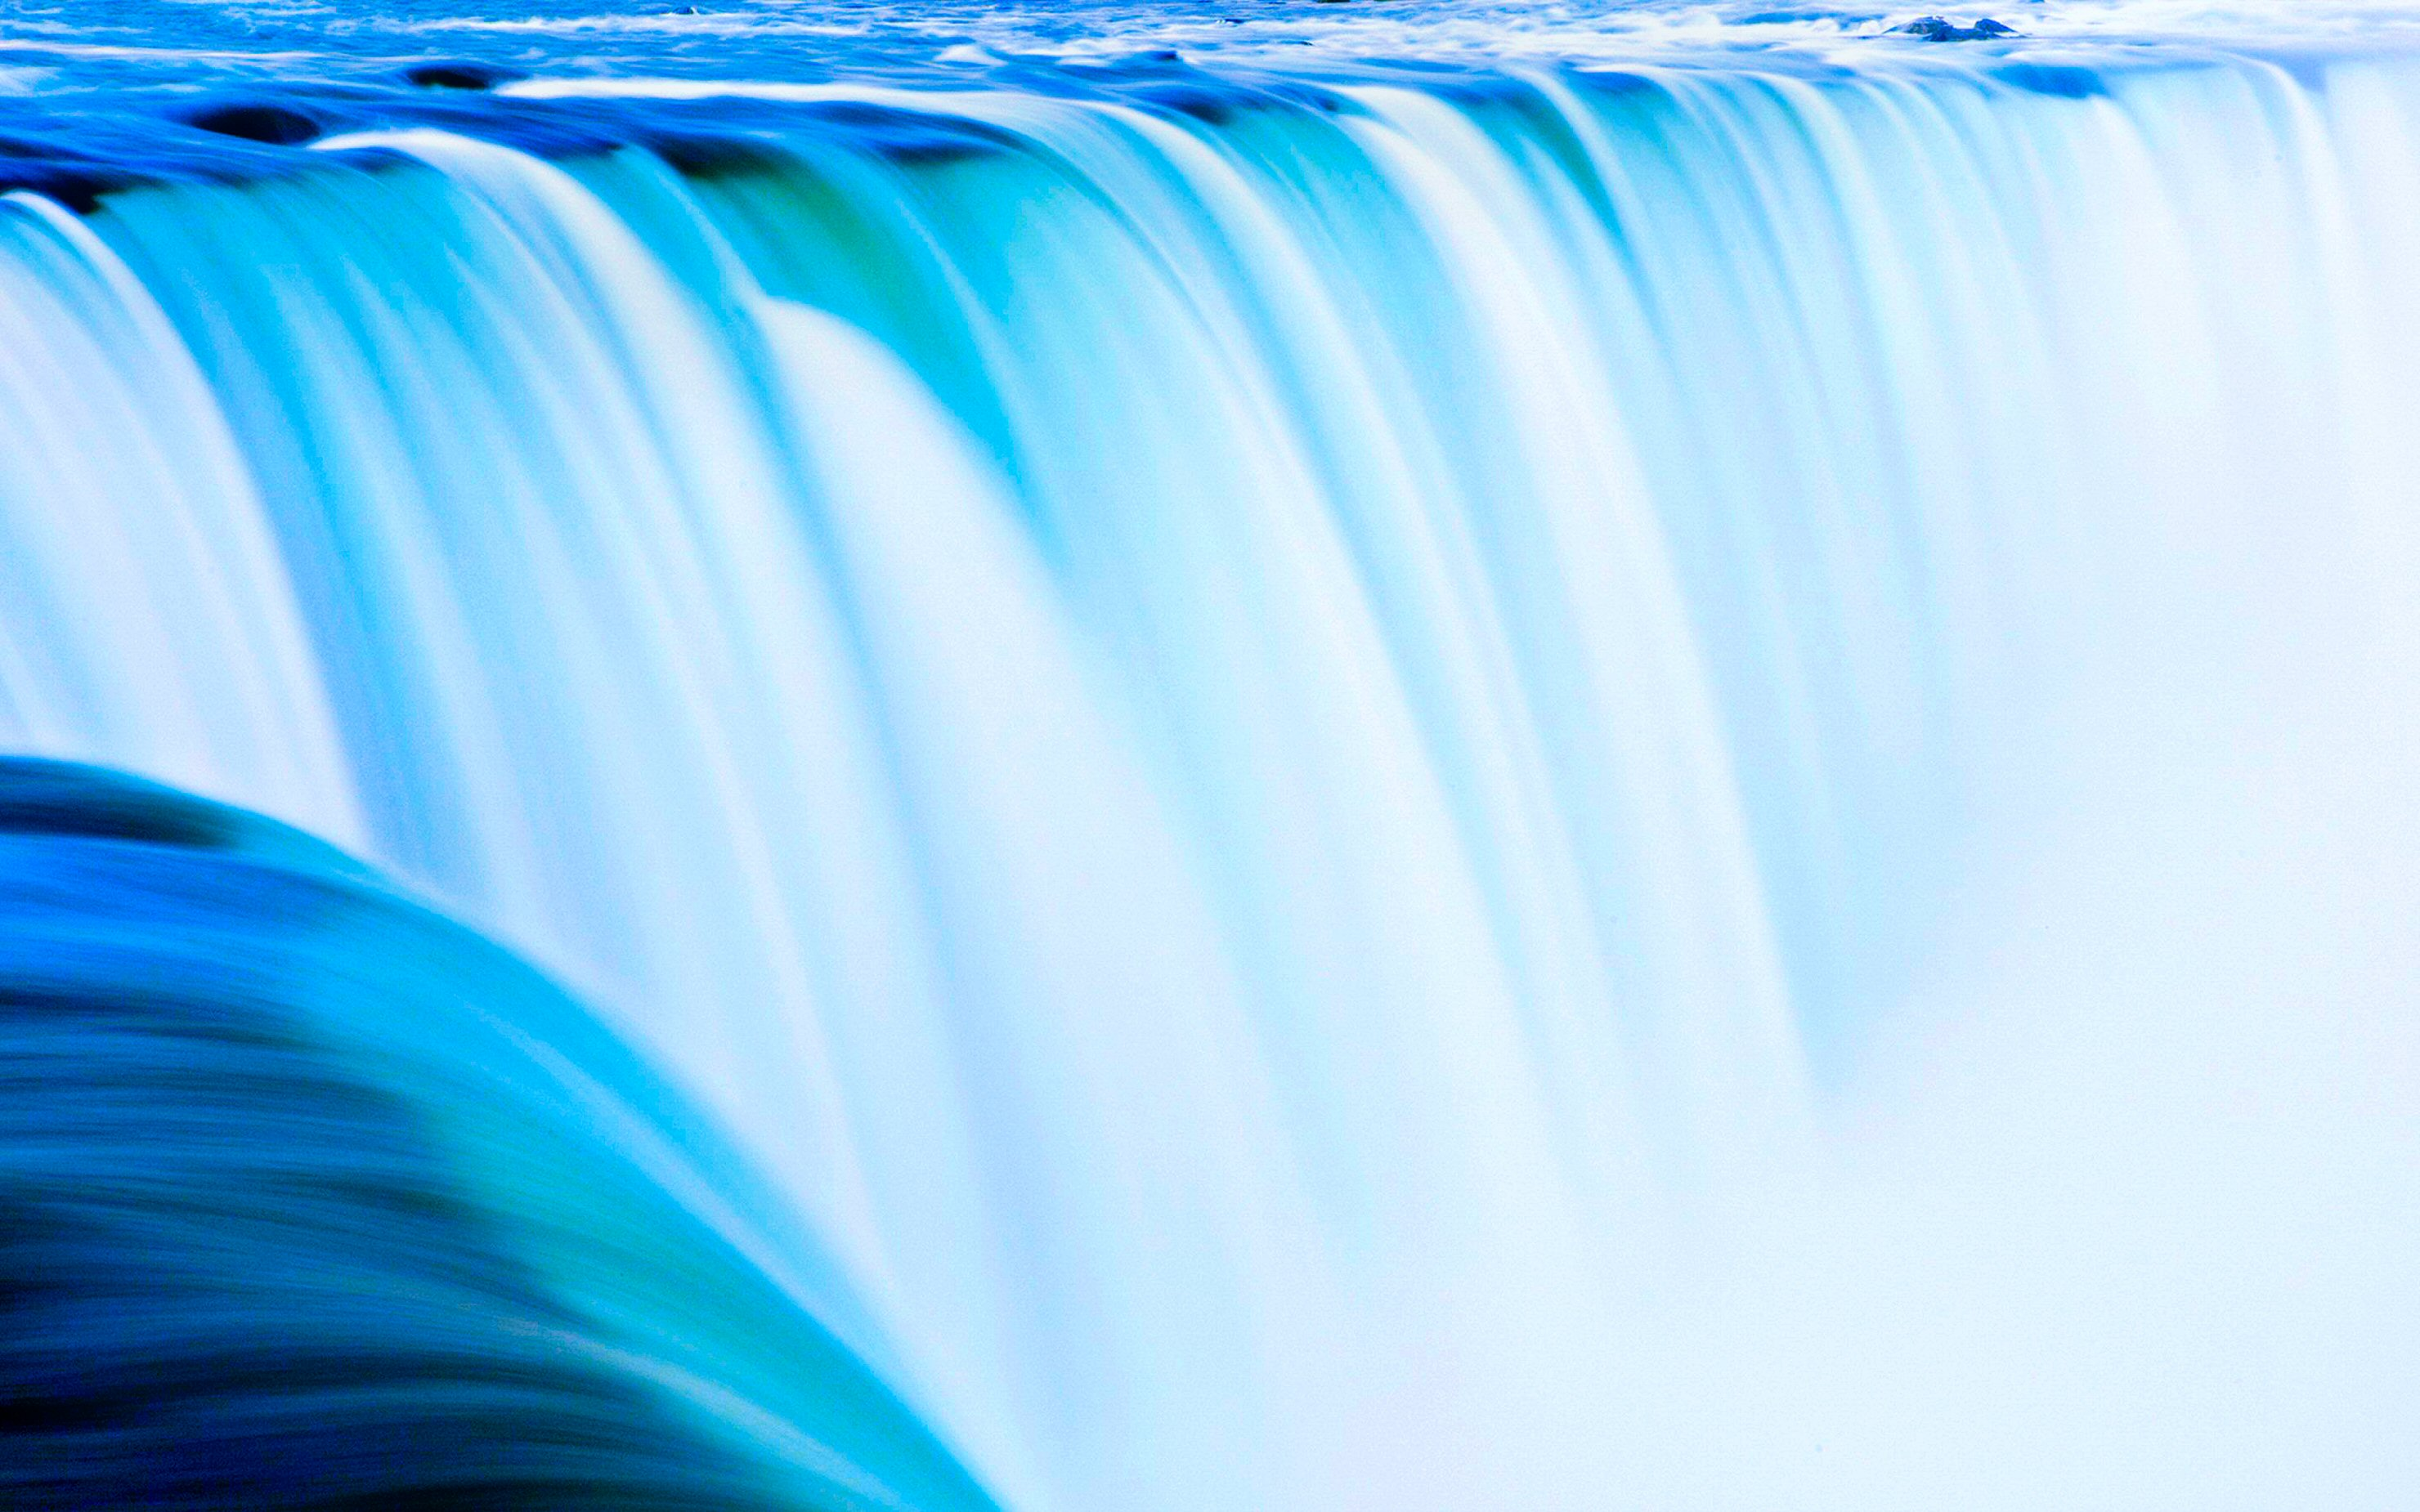 Fall Wallpaper For Iphone 6 Plus Waterfall 02 Clearwater Revival 214935versionone